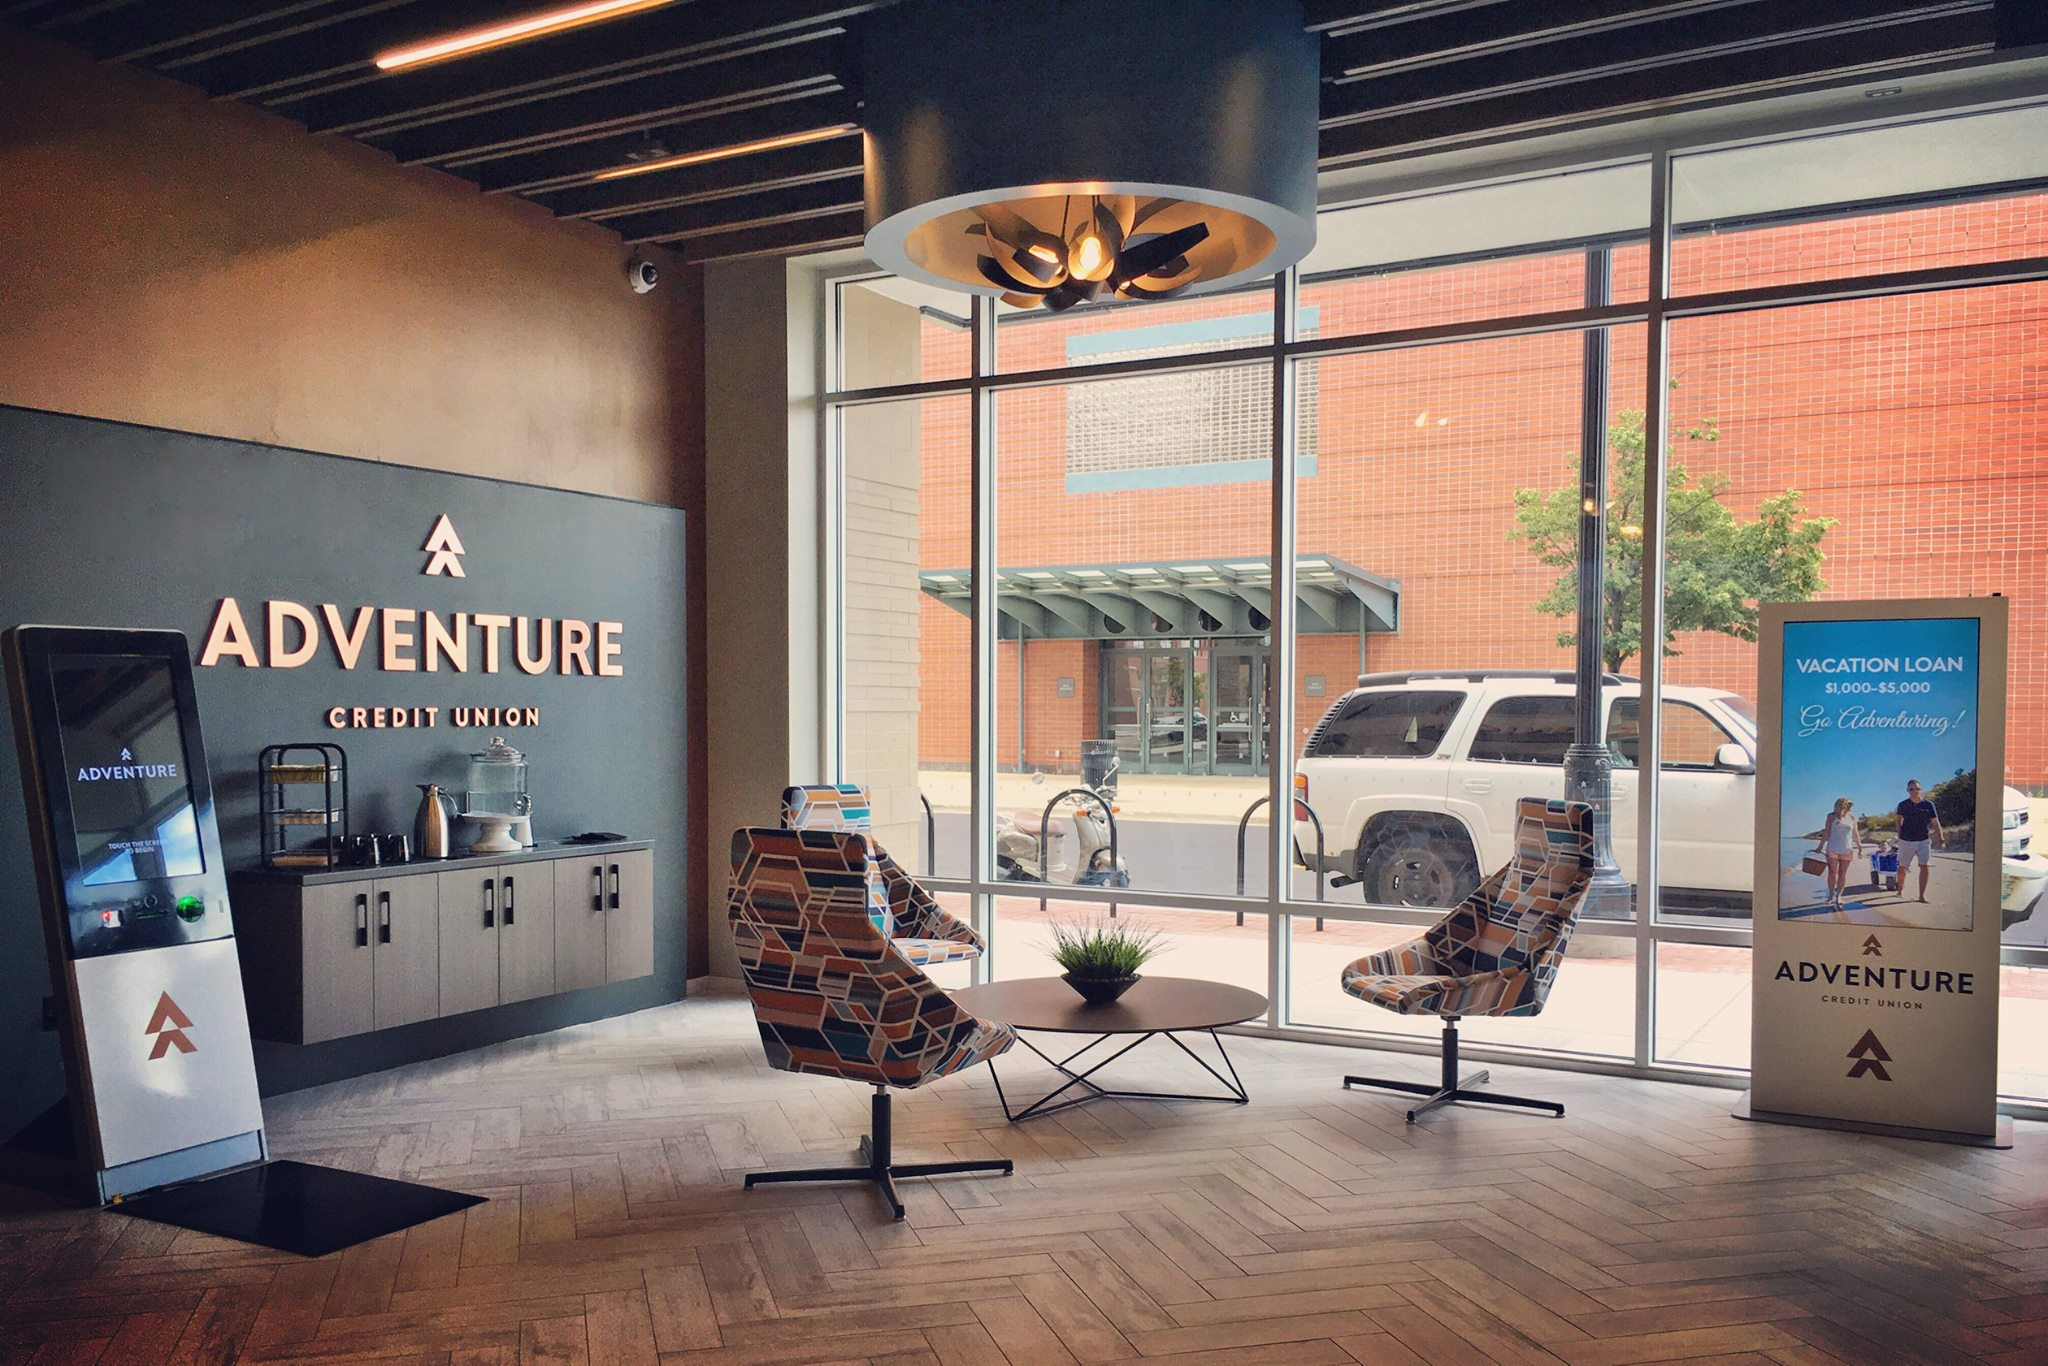 A photo of Adventure Credit Union